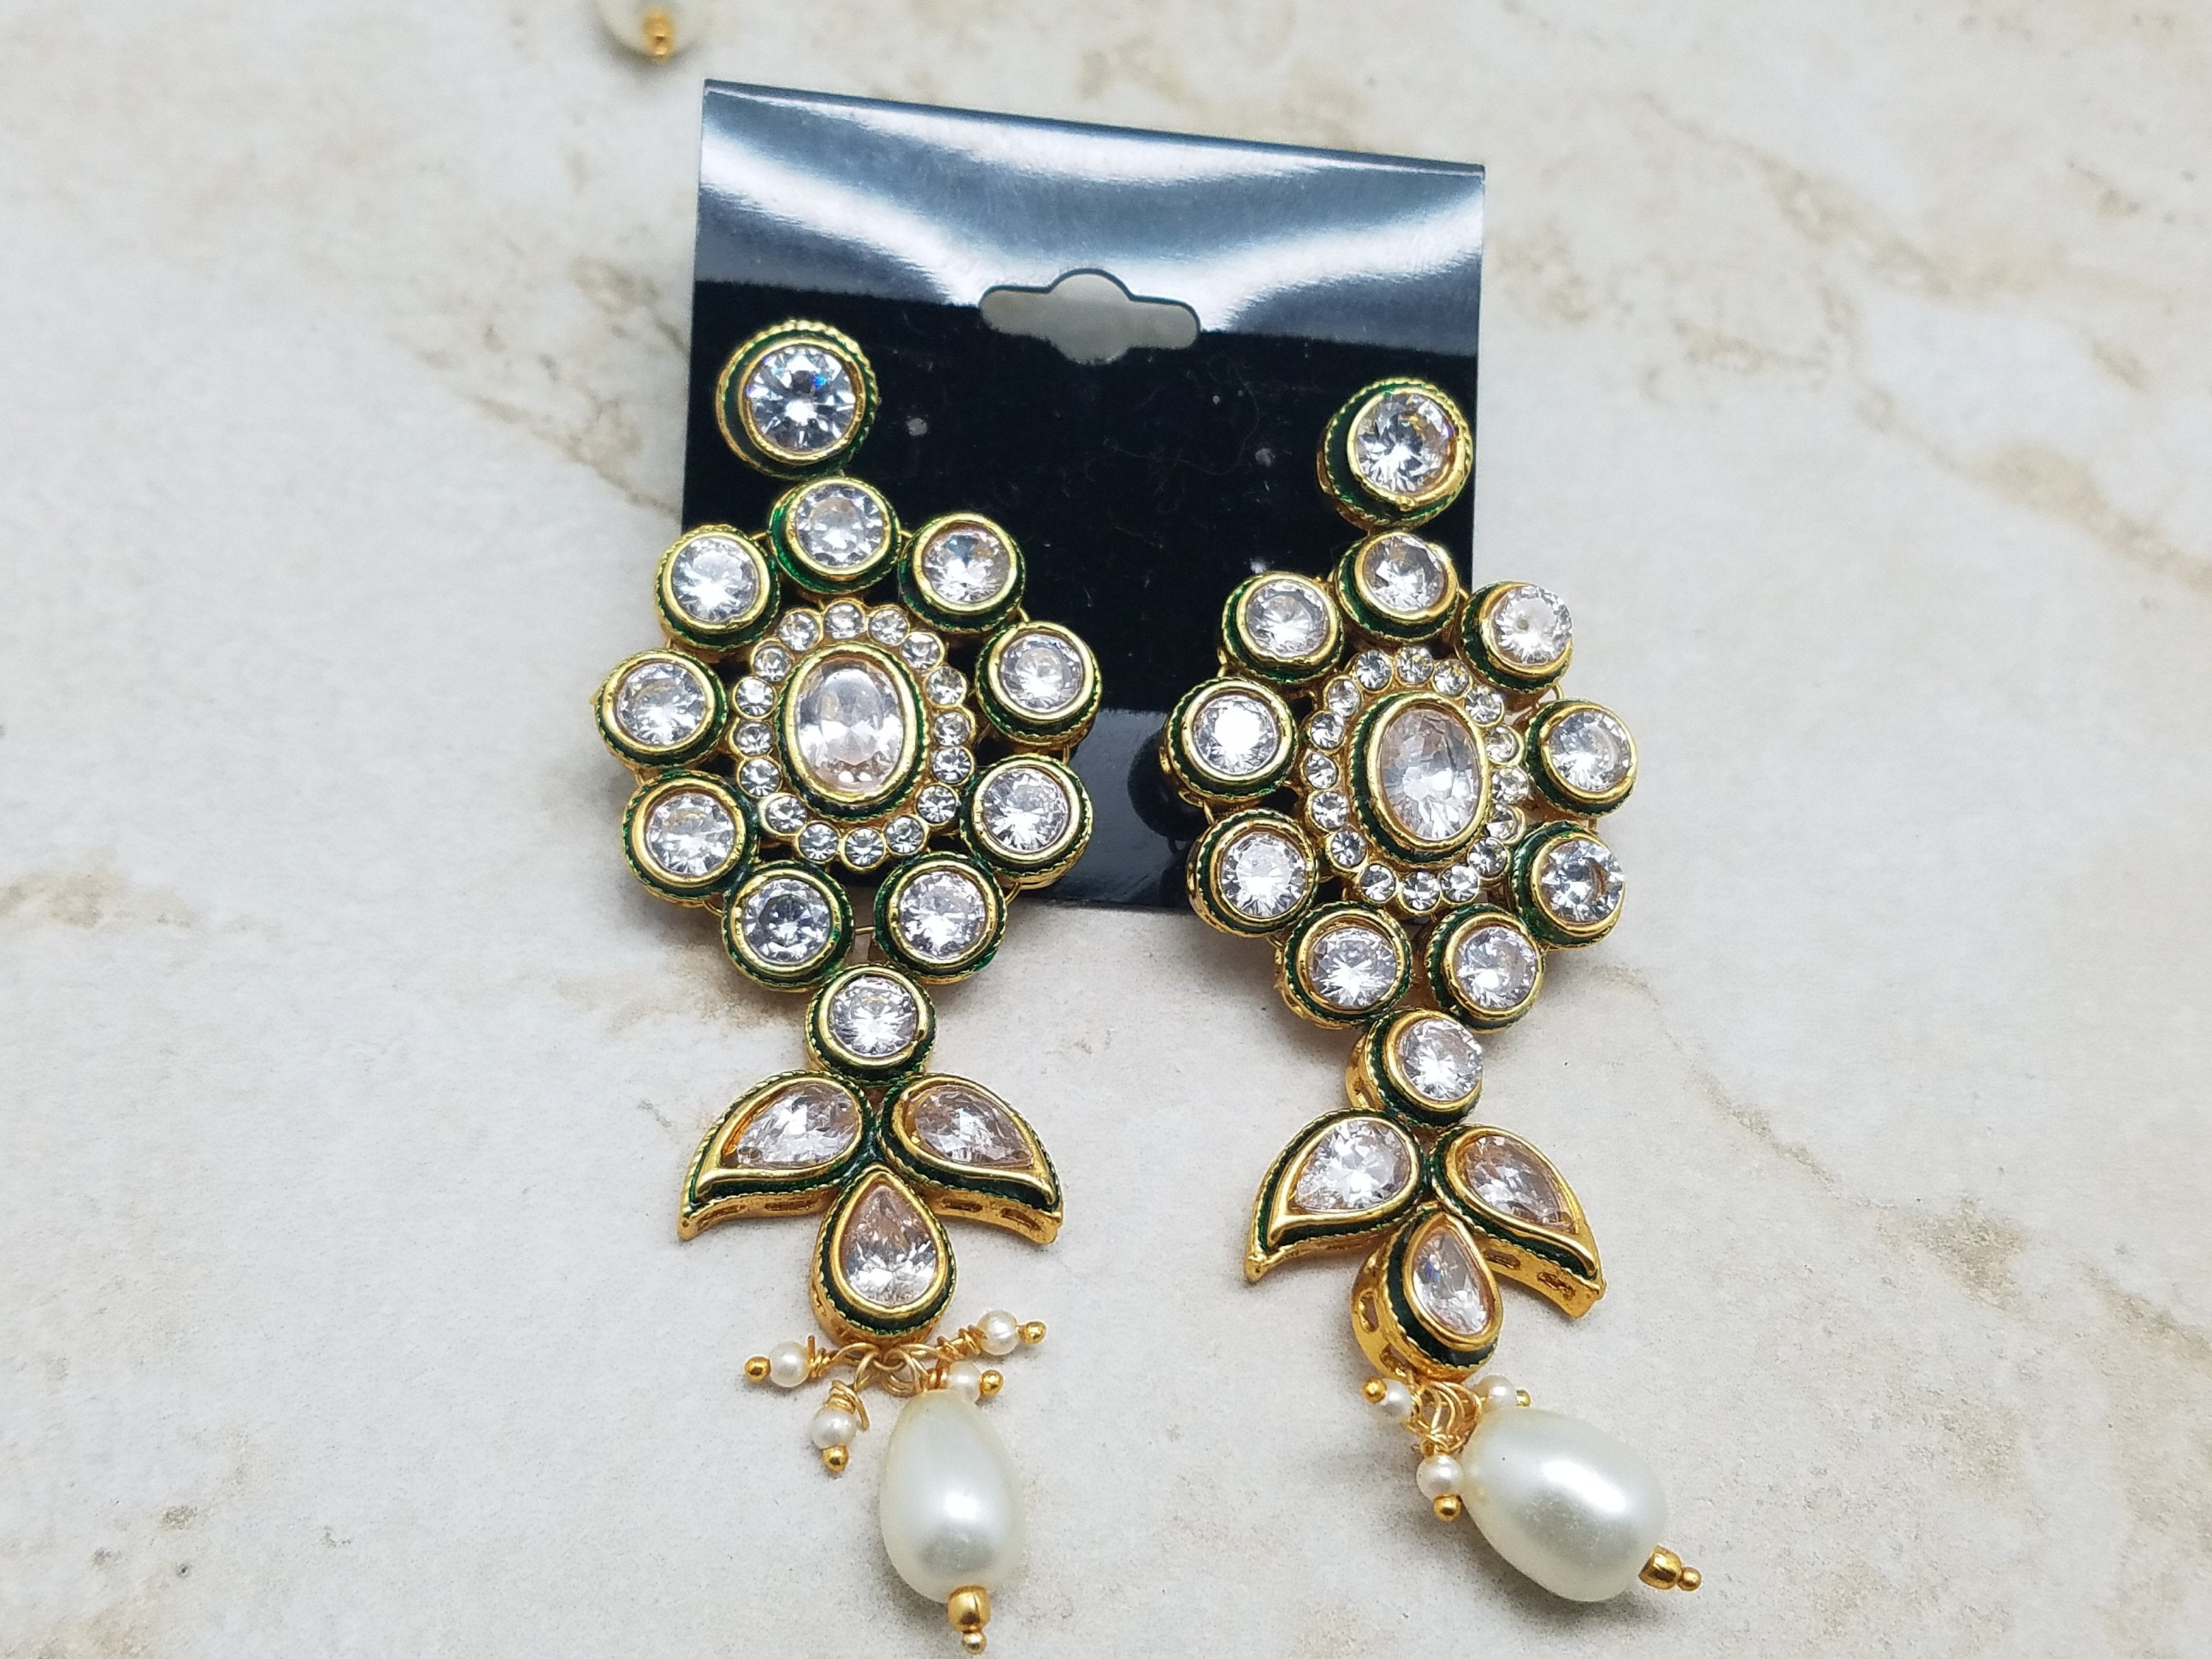 Bridal Faux White Pearl Kundan Polki Choker Necklace w/ Earrings & Tikka